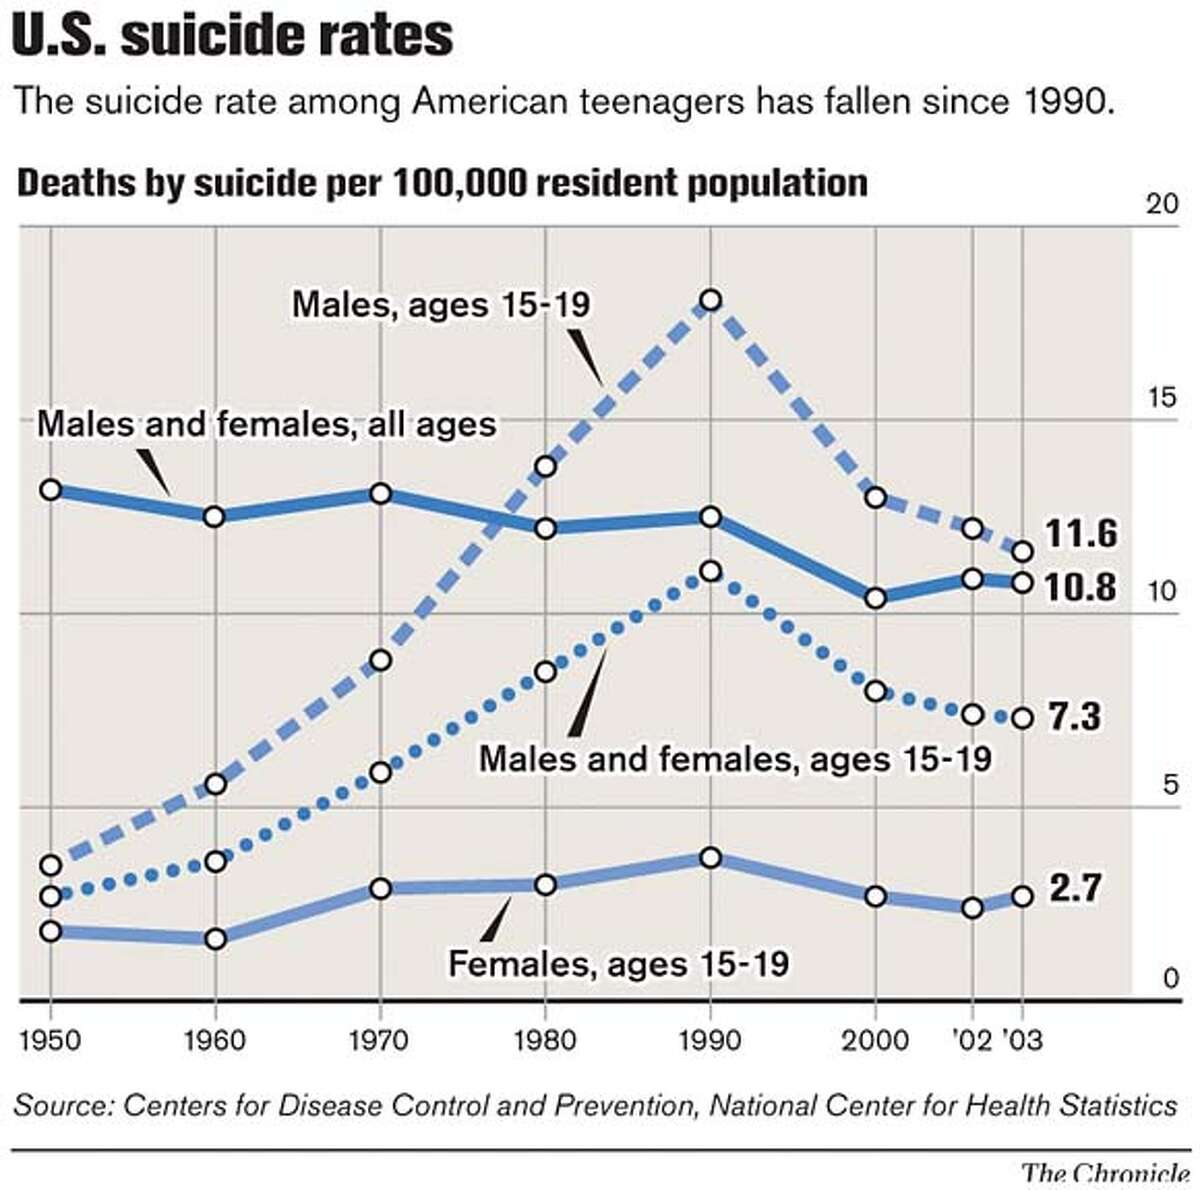 U.S. Suicide Rates. Chronicle Graphic